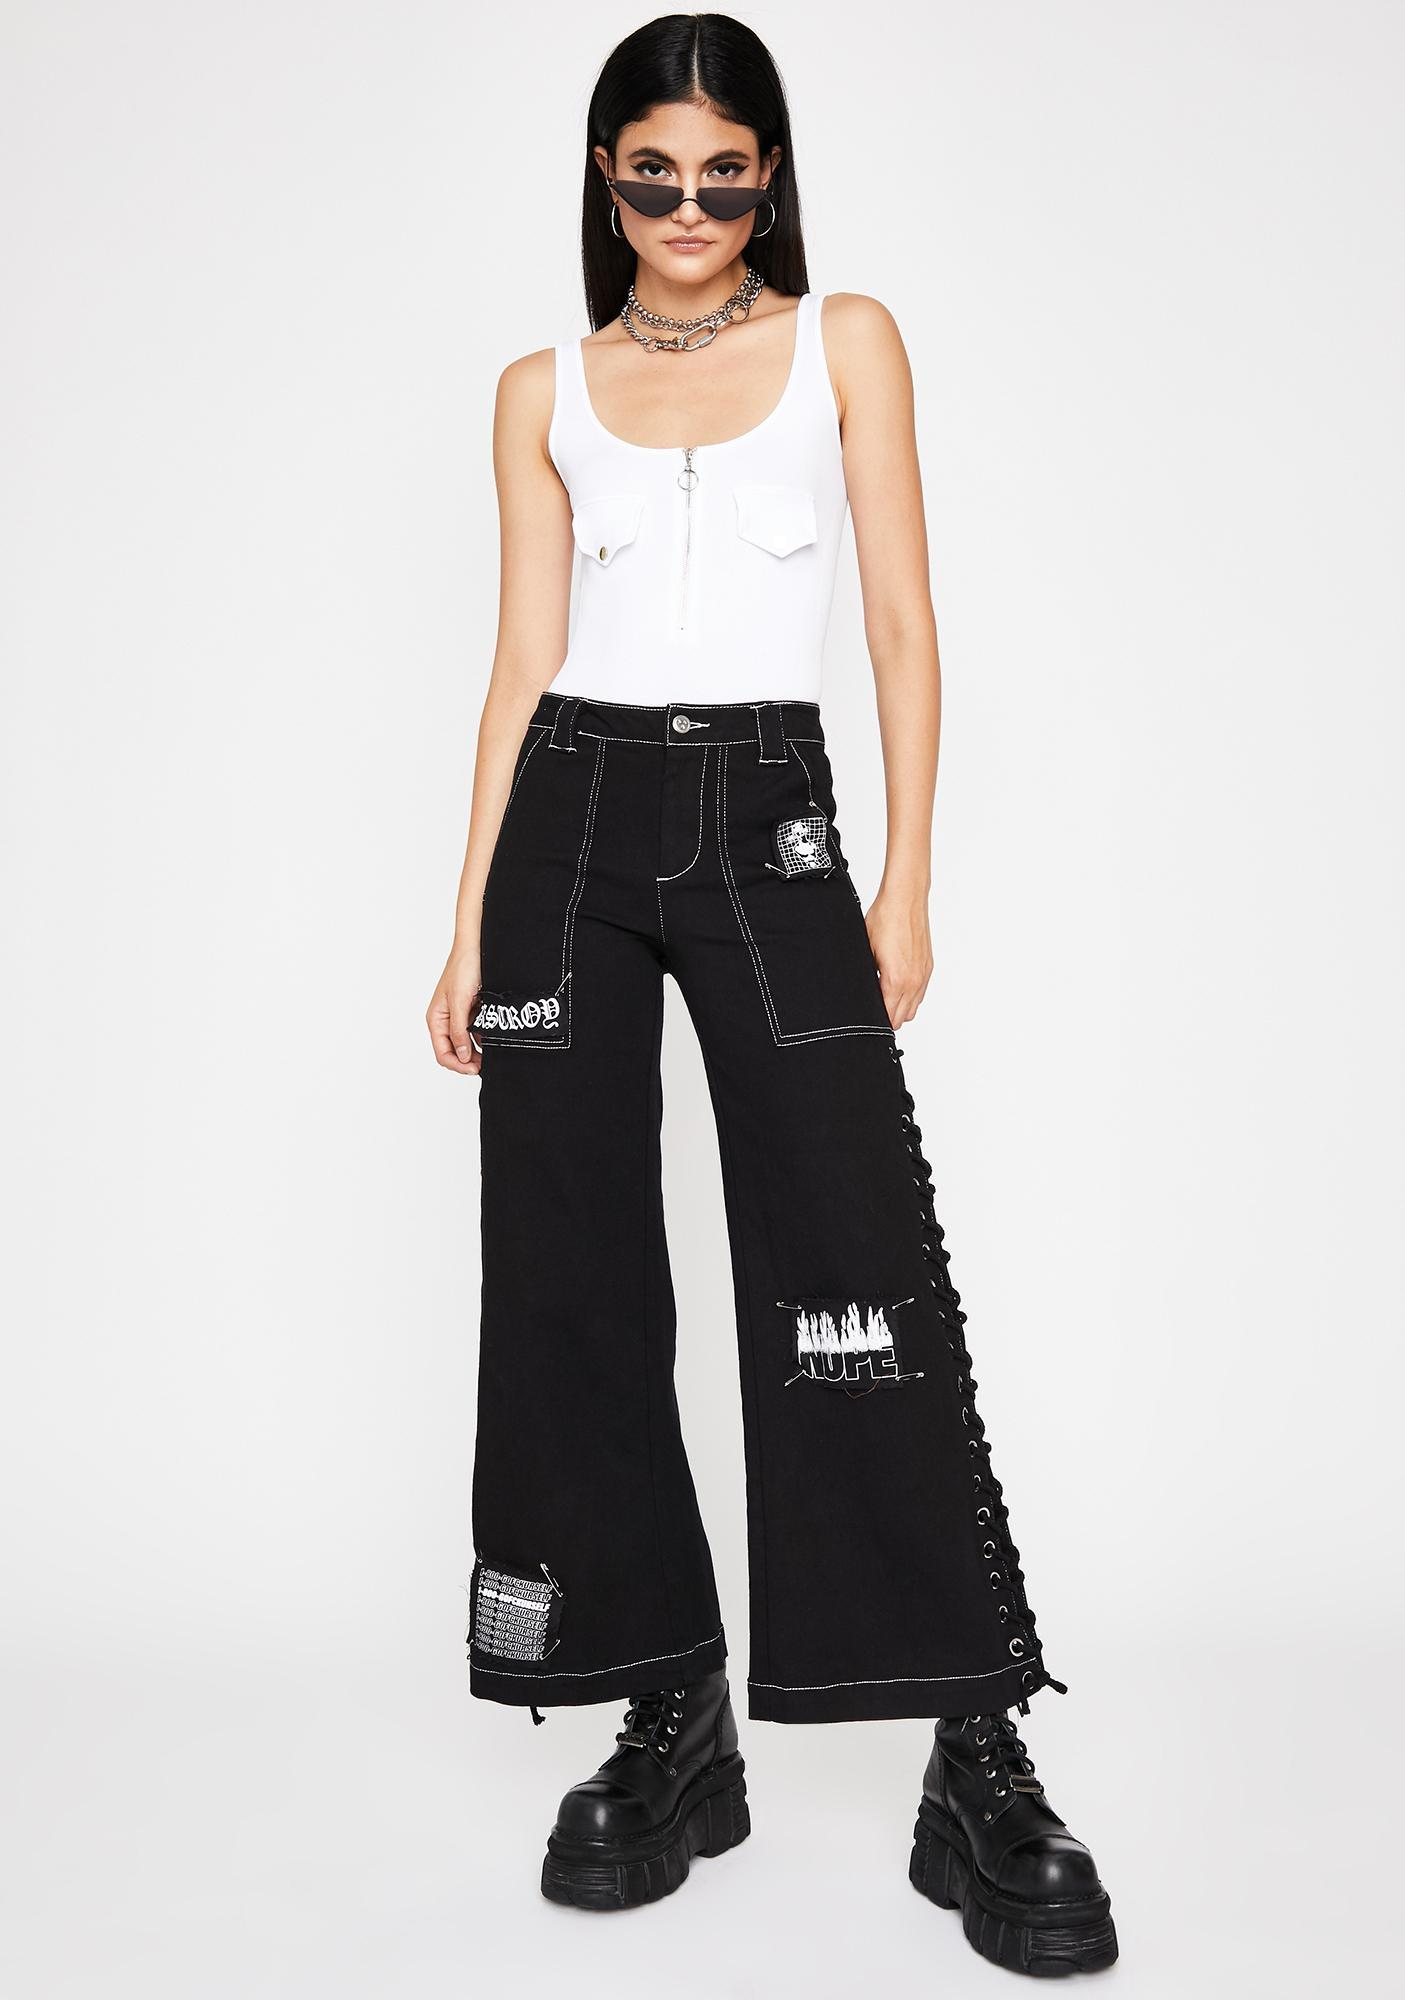 Chill Street Ruler Zip-Up Bodysuit